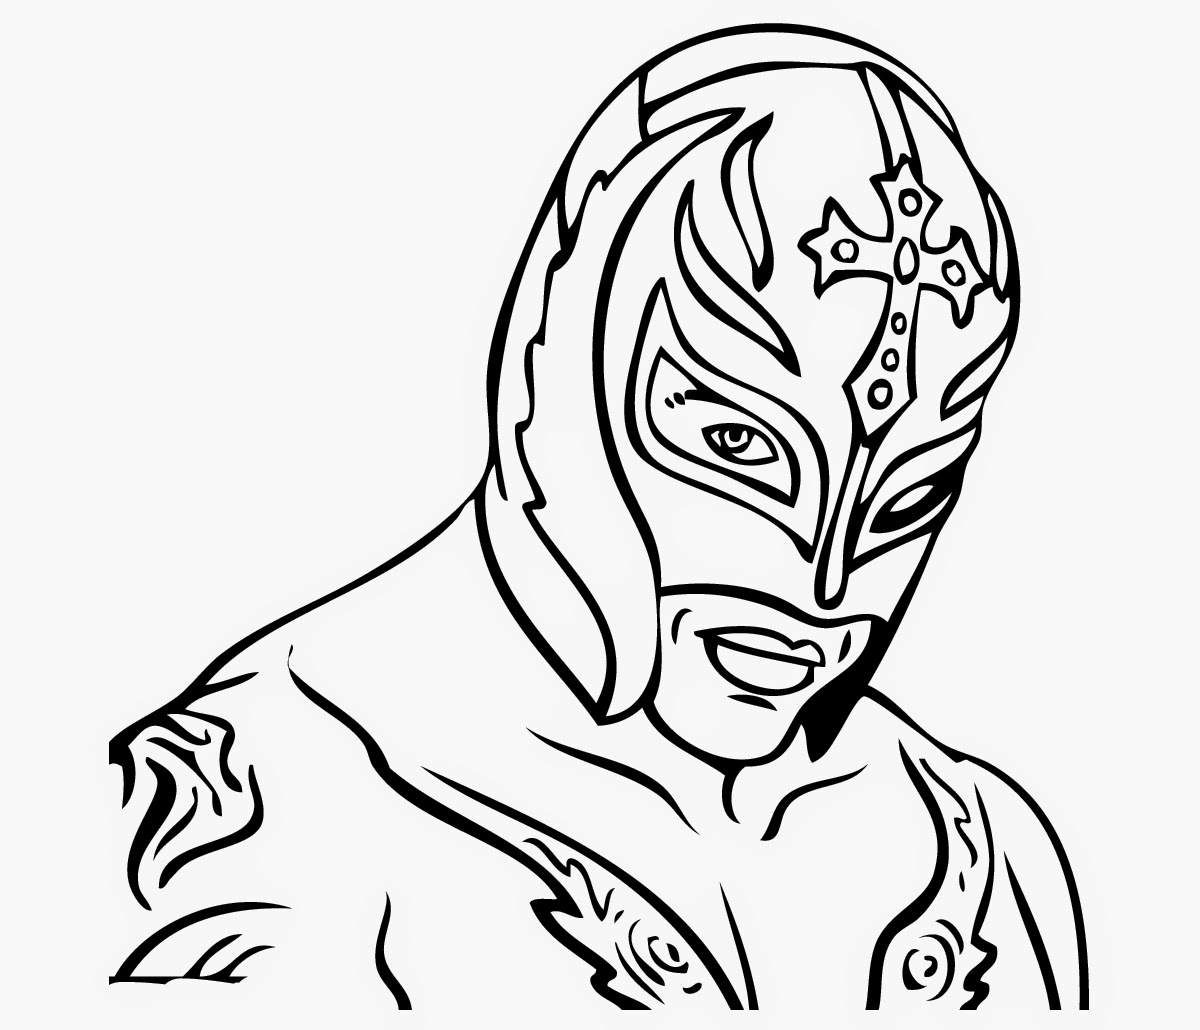 wwe colouring pictures wwe coloring pages of rey mysterio wwe colouring pictures 1 1